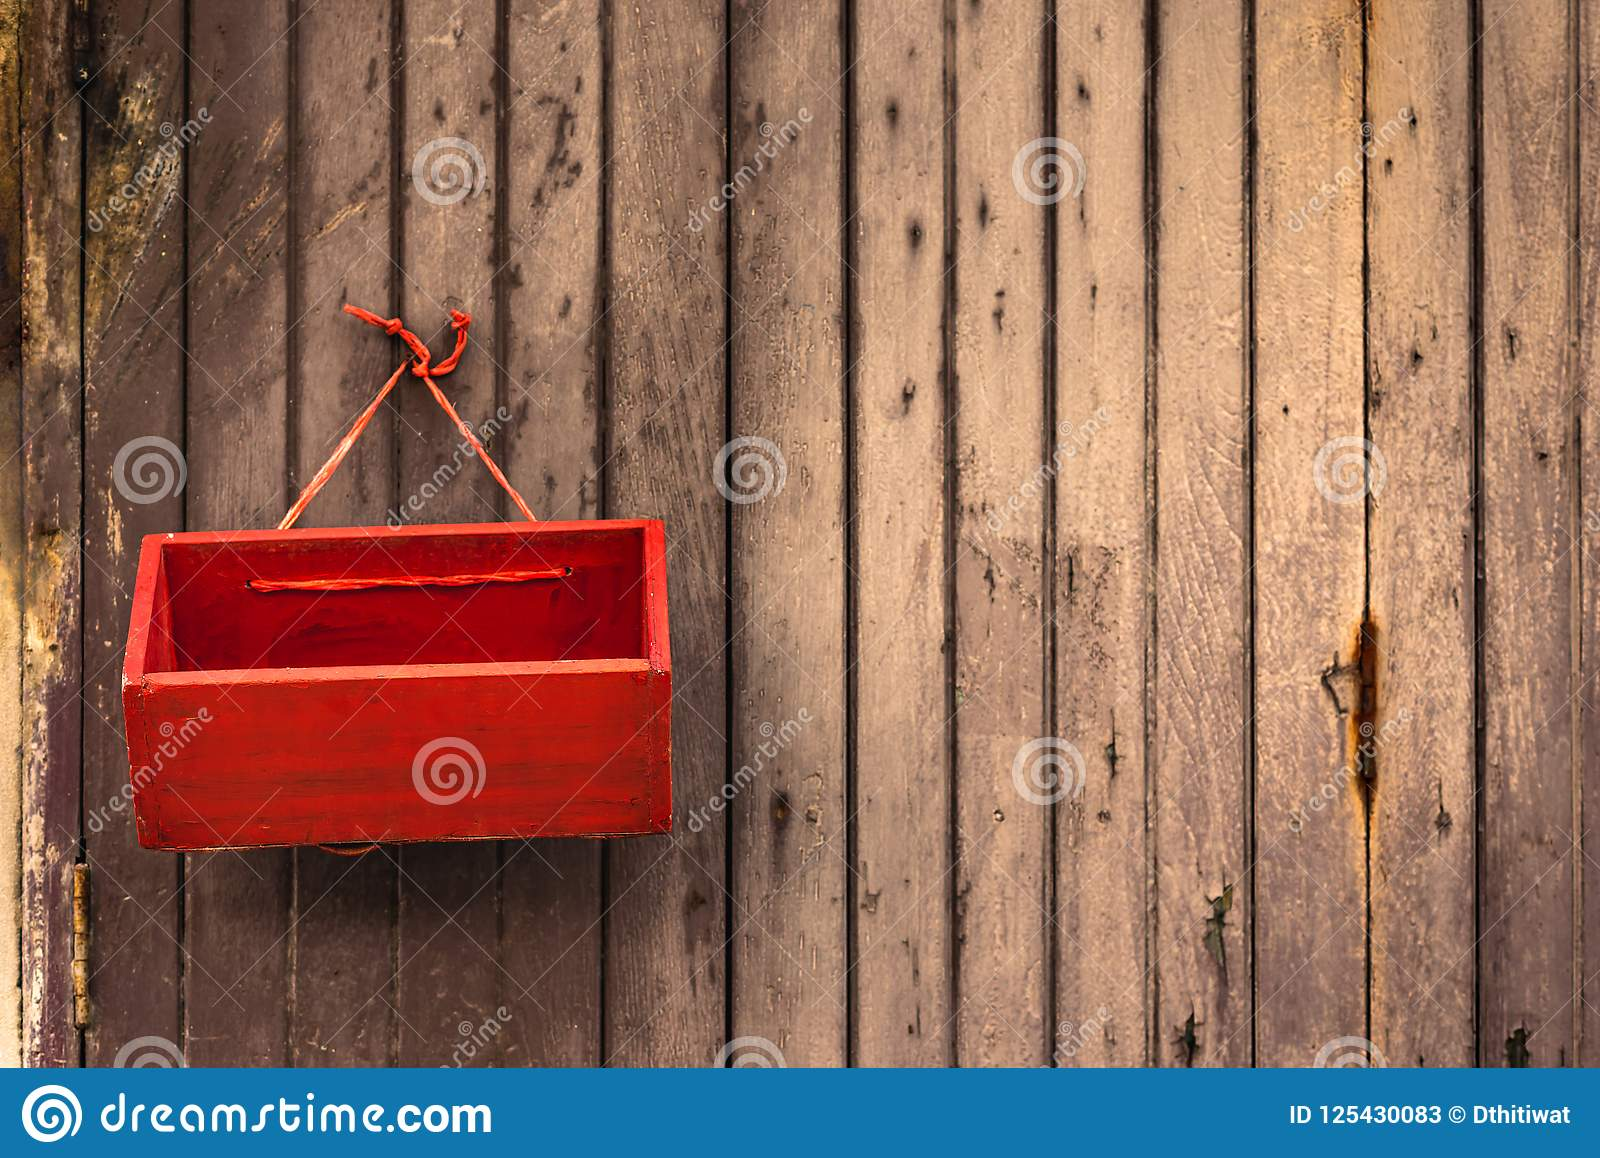 Red Box Hang On Old Wooden Door Stock Image Image Of Front